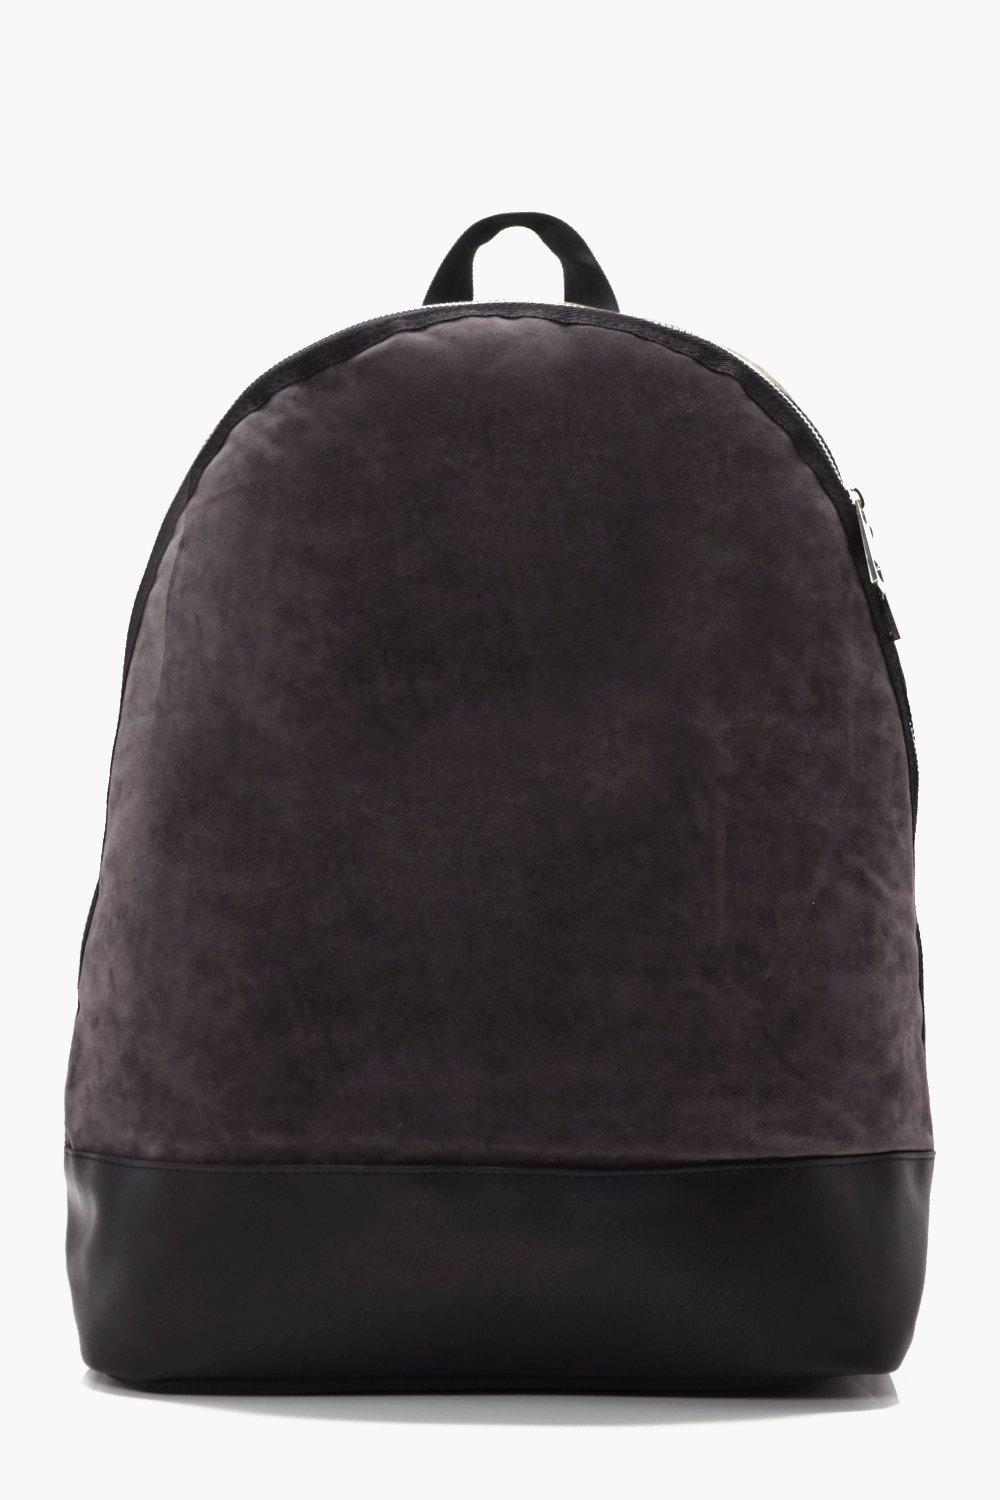 Suedette Back Pack - grey - Lux Suedette Back Pack